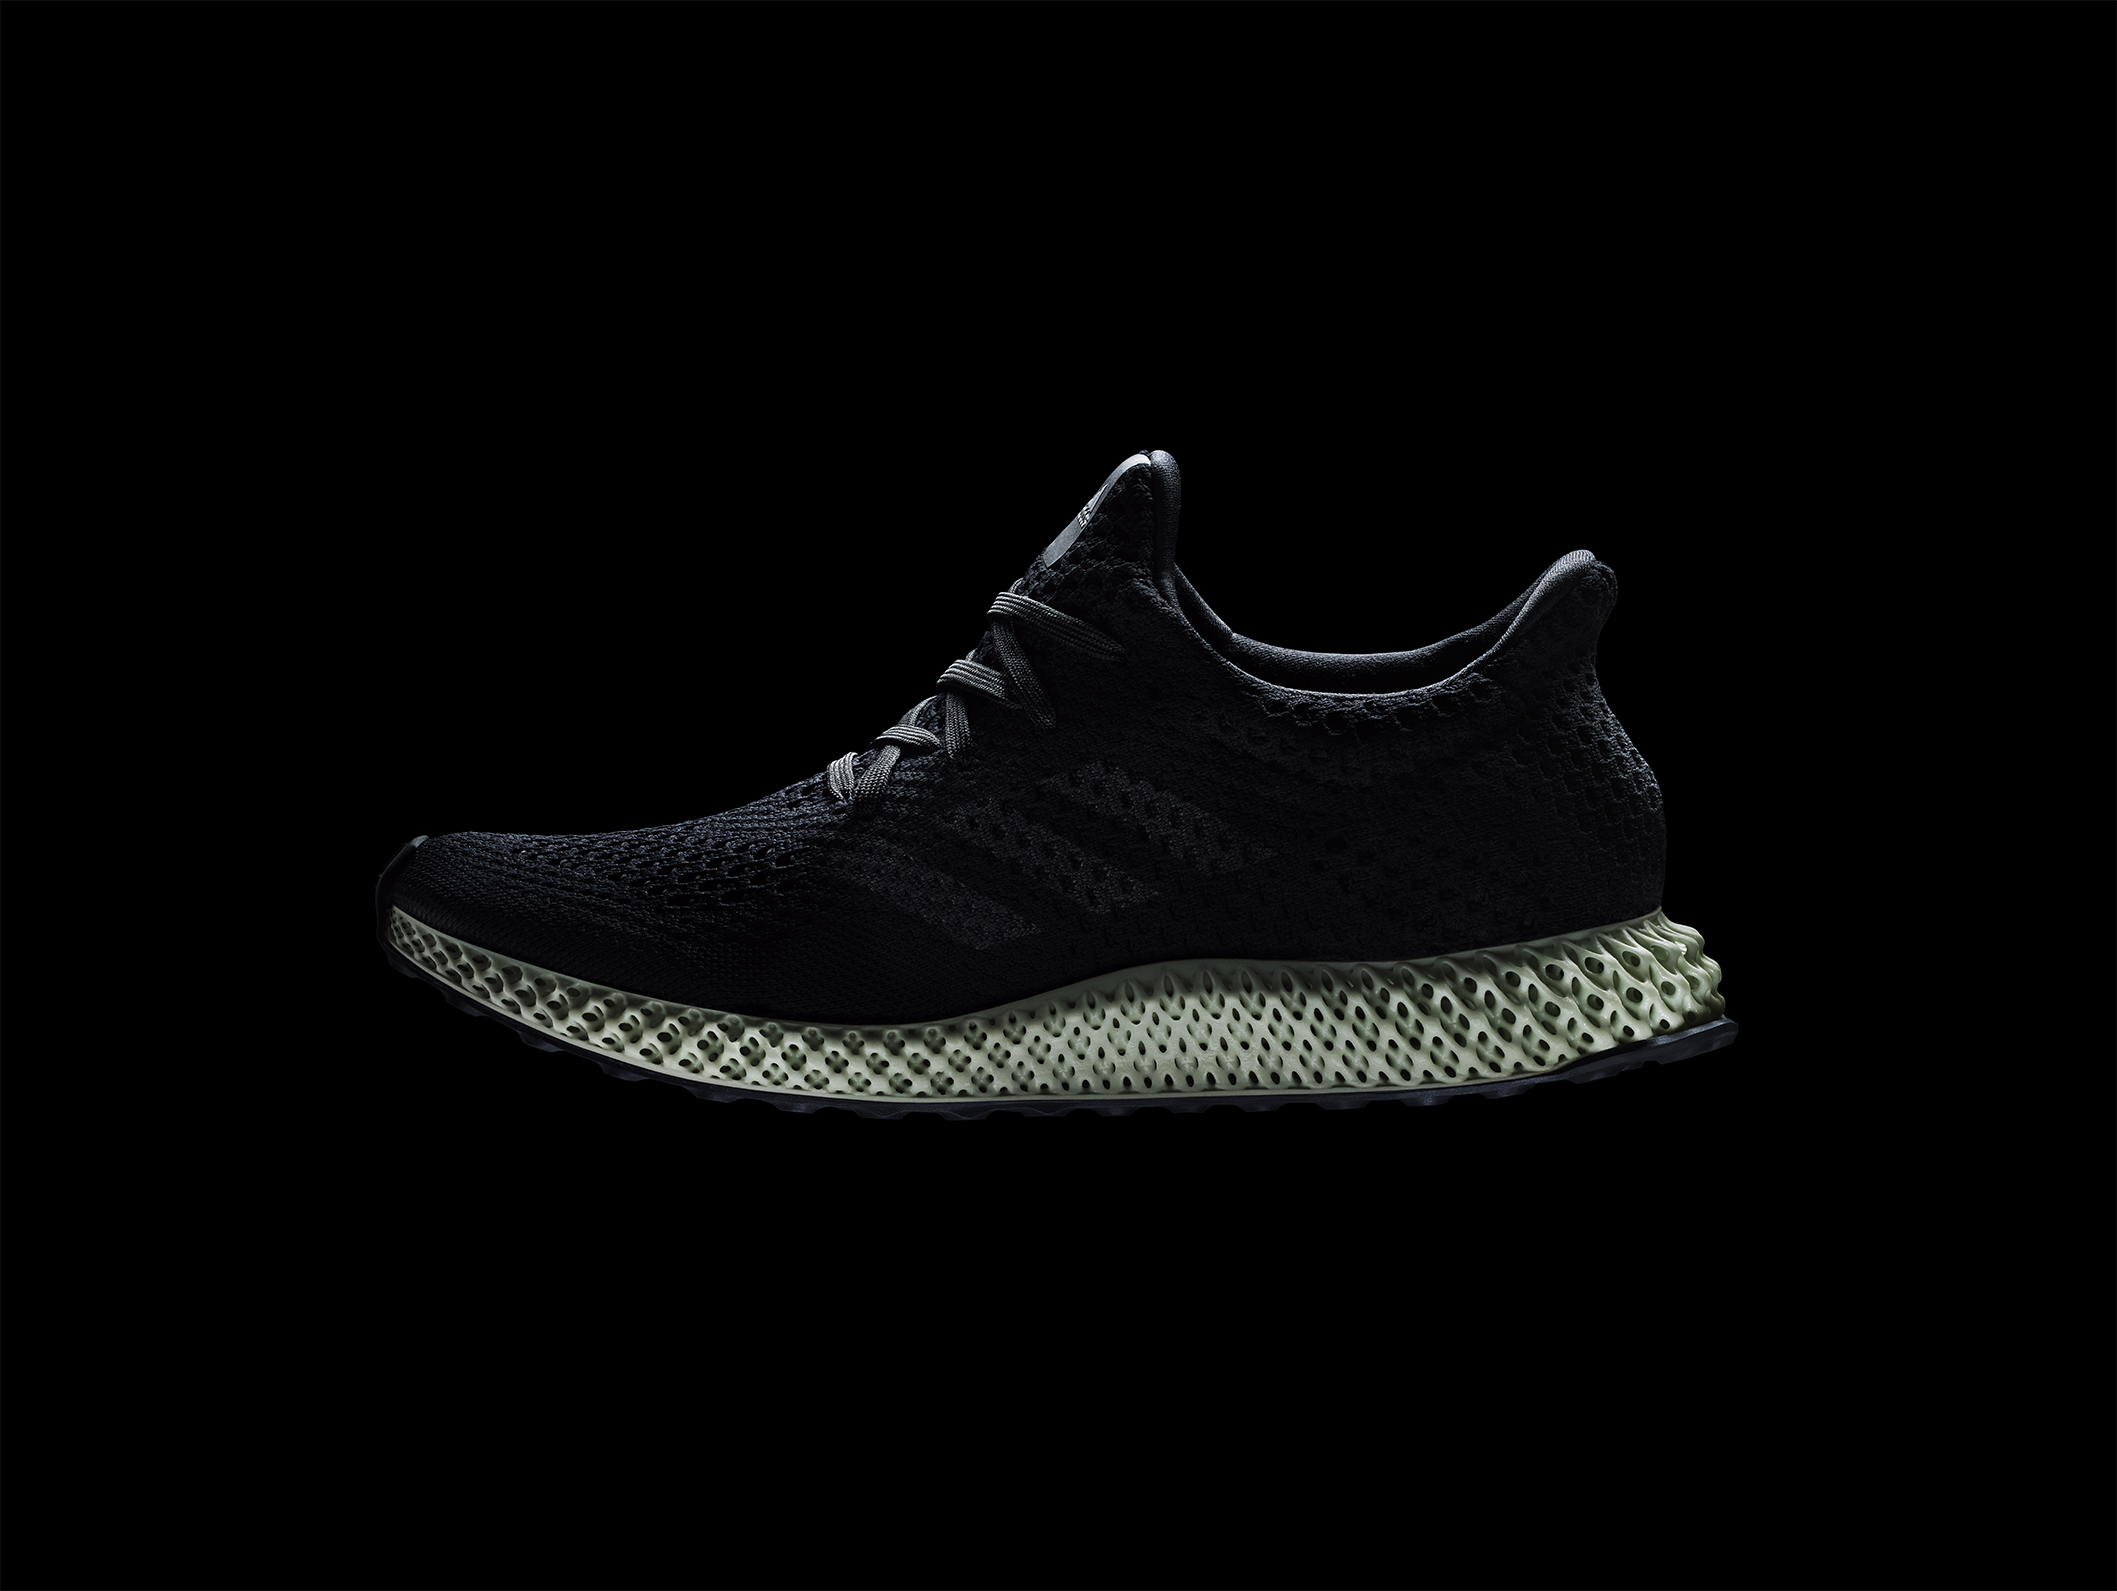 b8388155c3a07 Adidas reveals the first 3D-printed shoe it ll mass-produce - The Verge